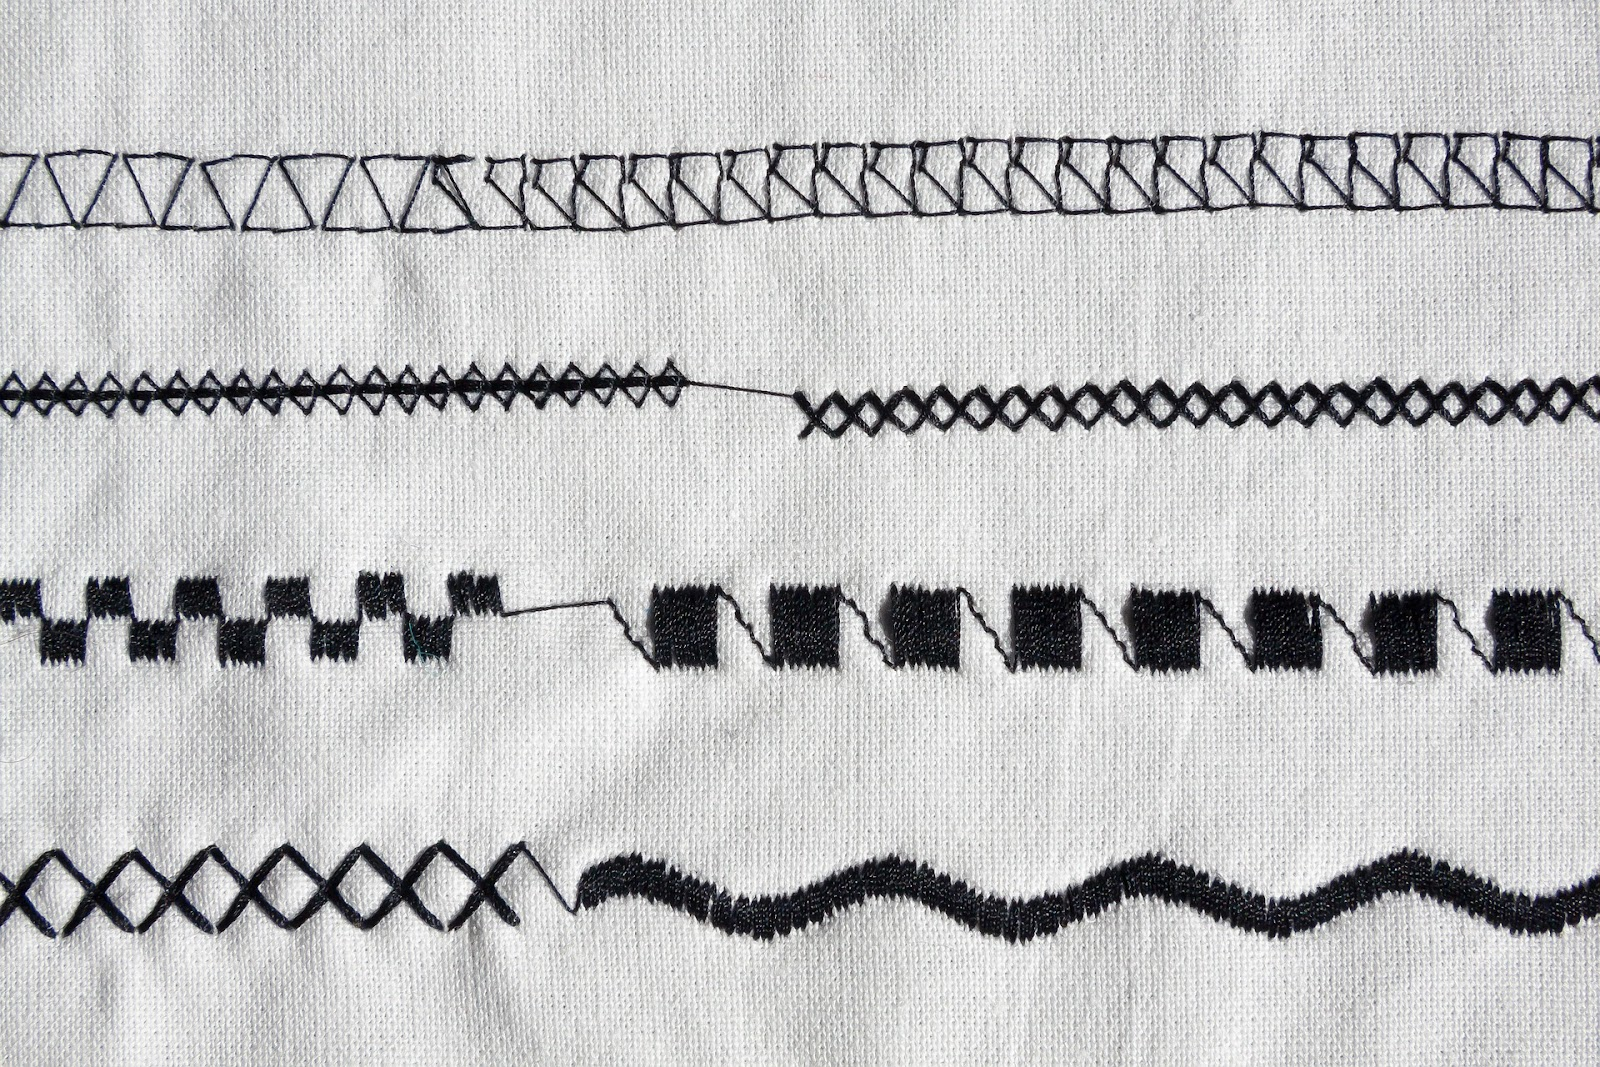 different types of stitches